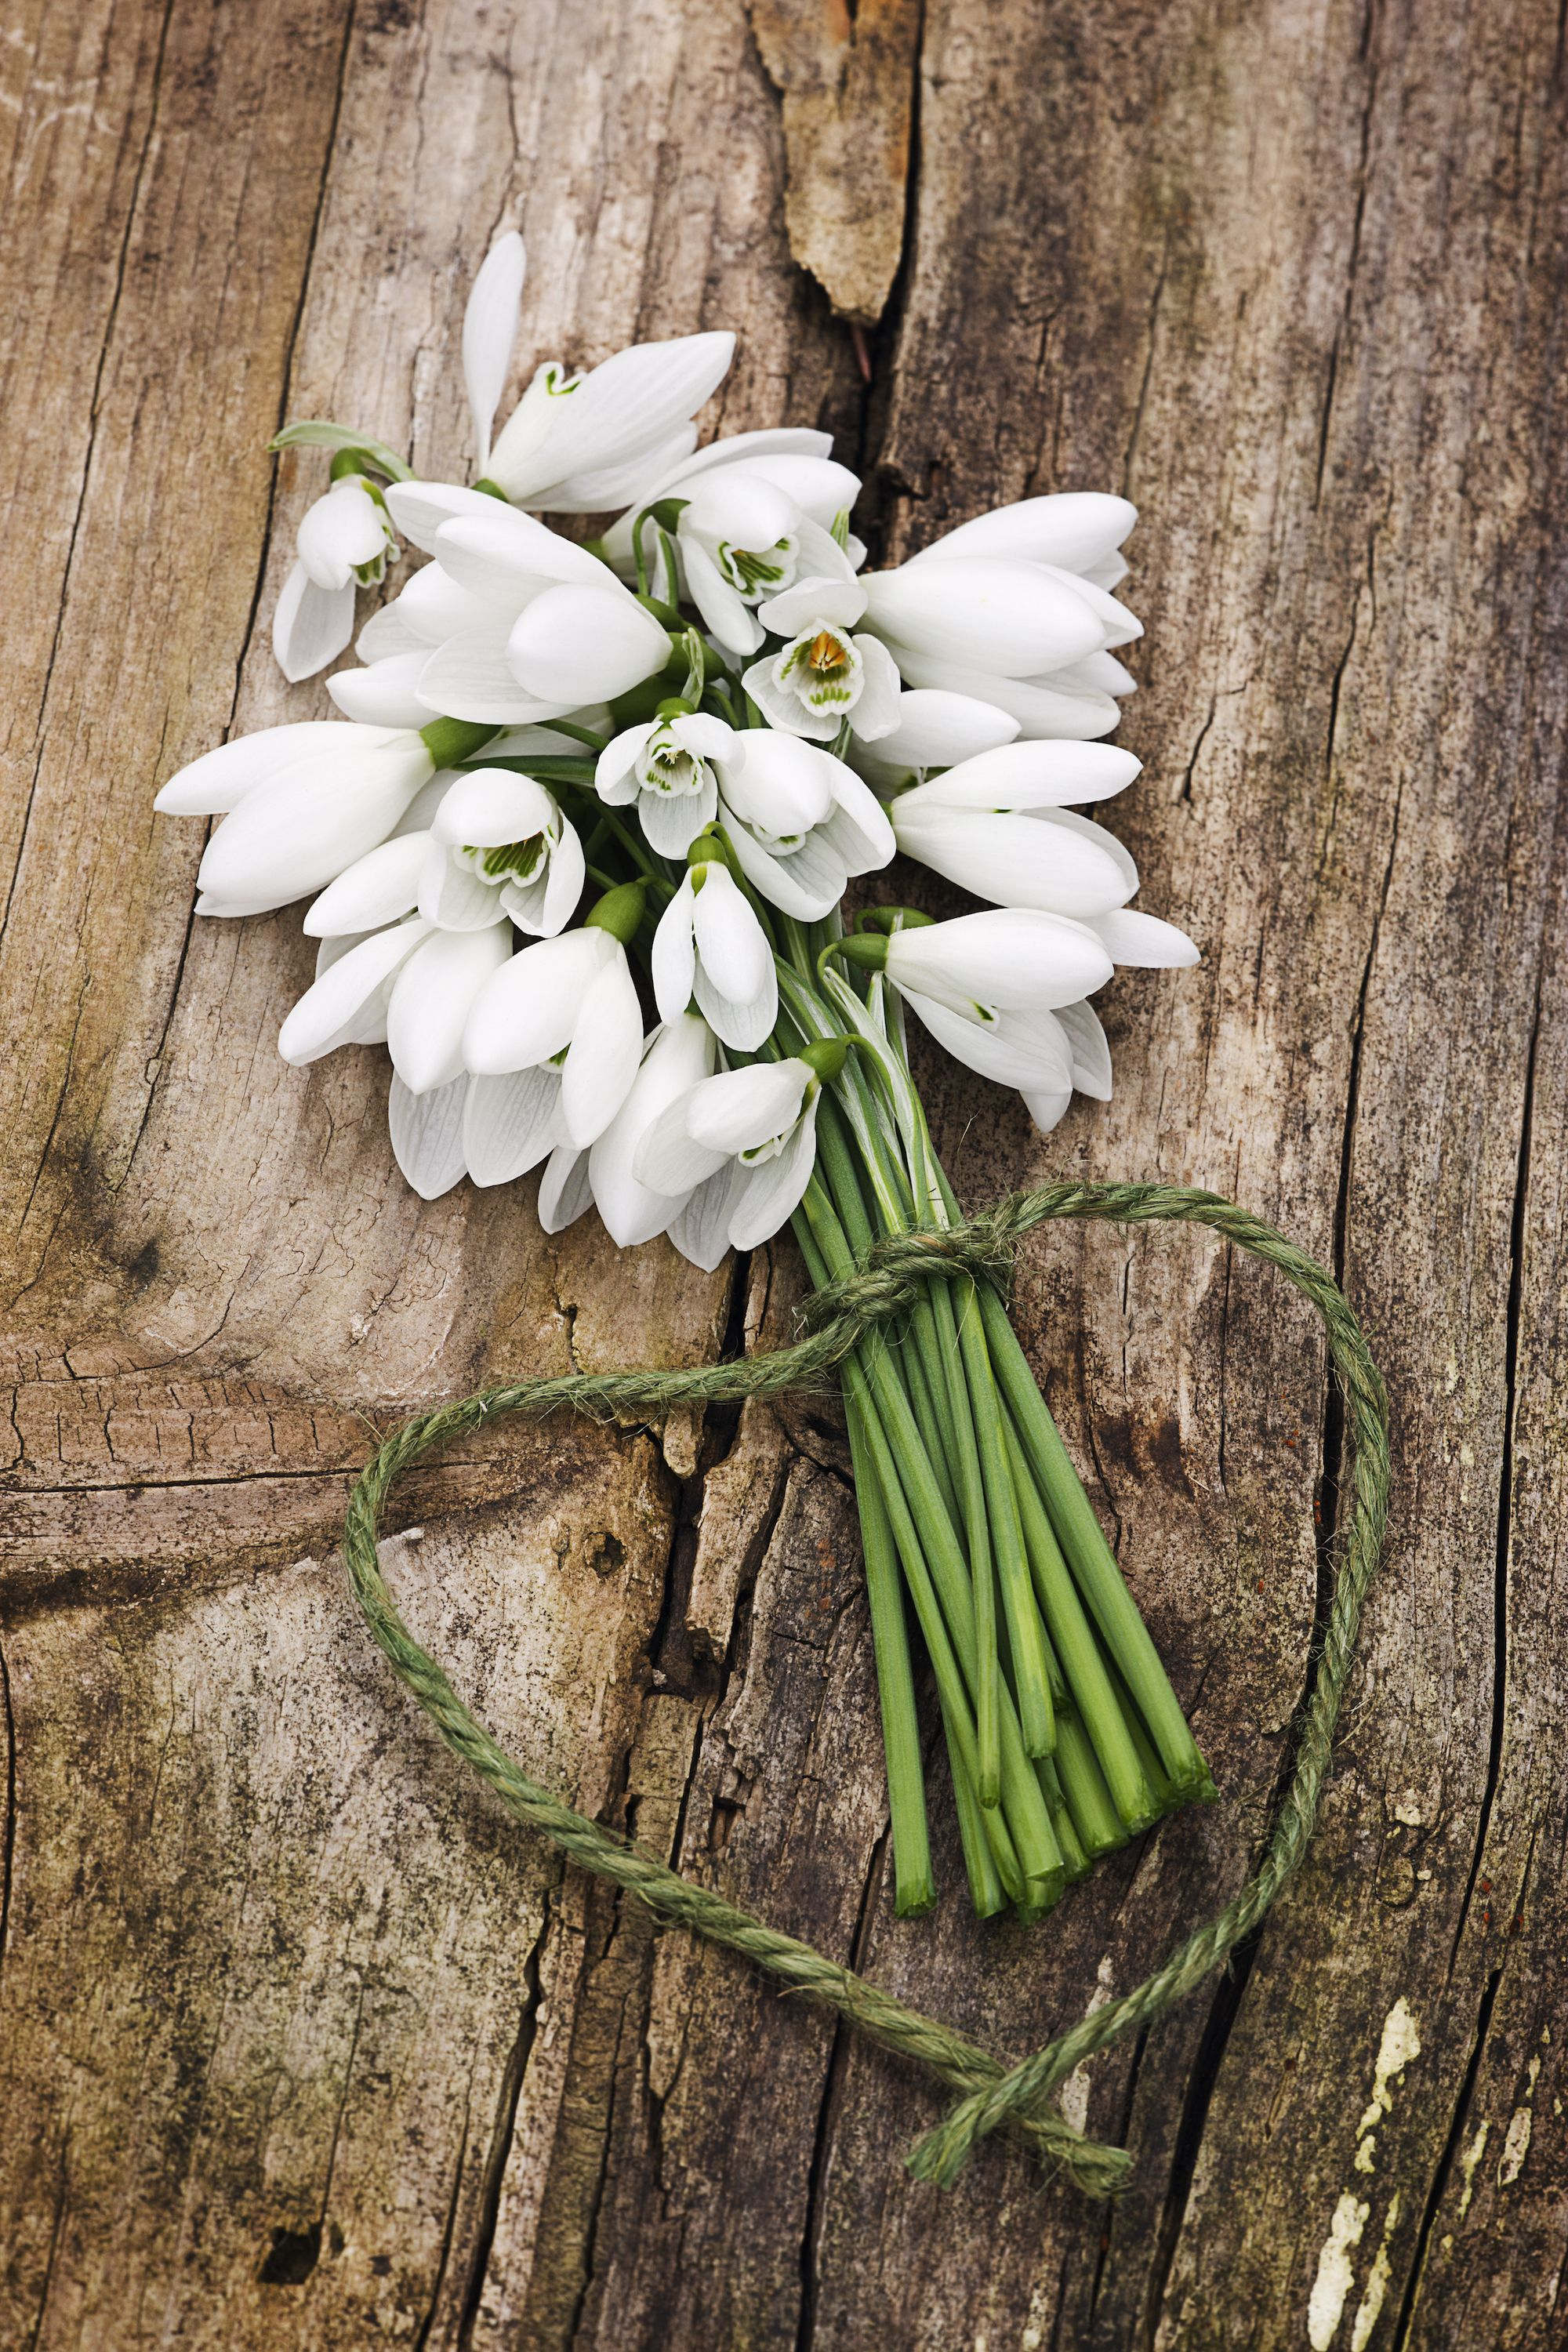 <p>Snow-white holiday blooms may seem like the perfect wintery gift for your host or hostess, but beware of cultural norms that could affect how they're received. 'Make sure your gift doesn't contain any cultural symbolism for the host,'says Blum. 'For example, white flowers in Asian cultures are considered funeral flowers.'</p>